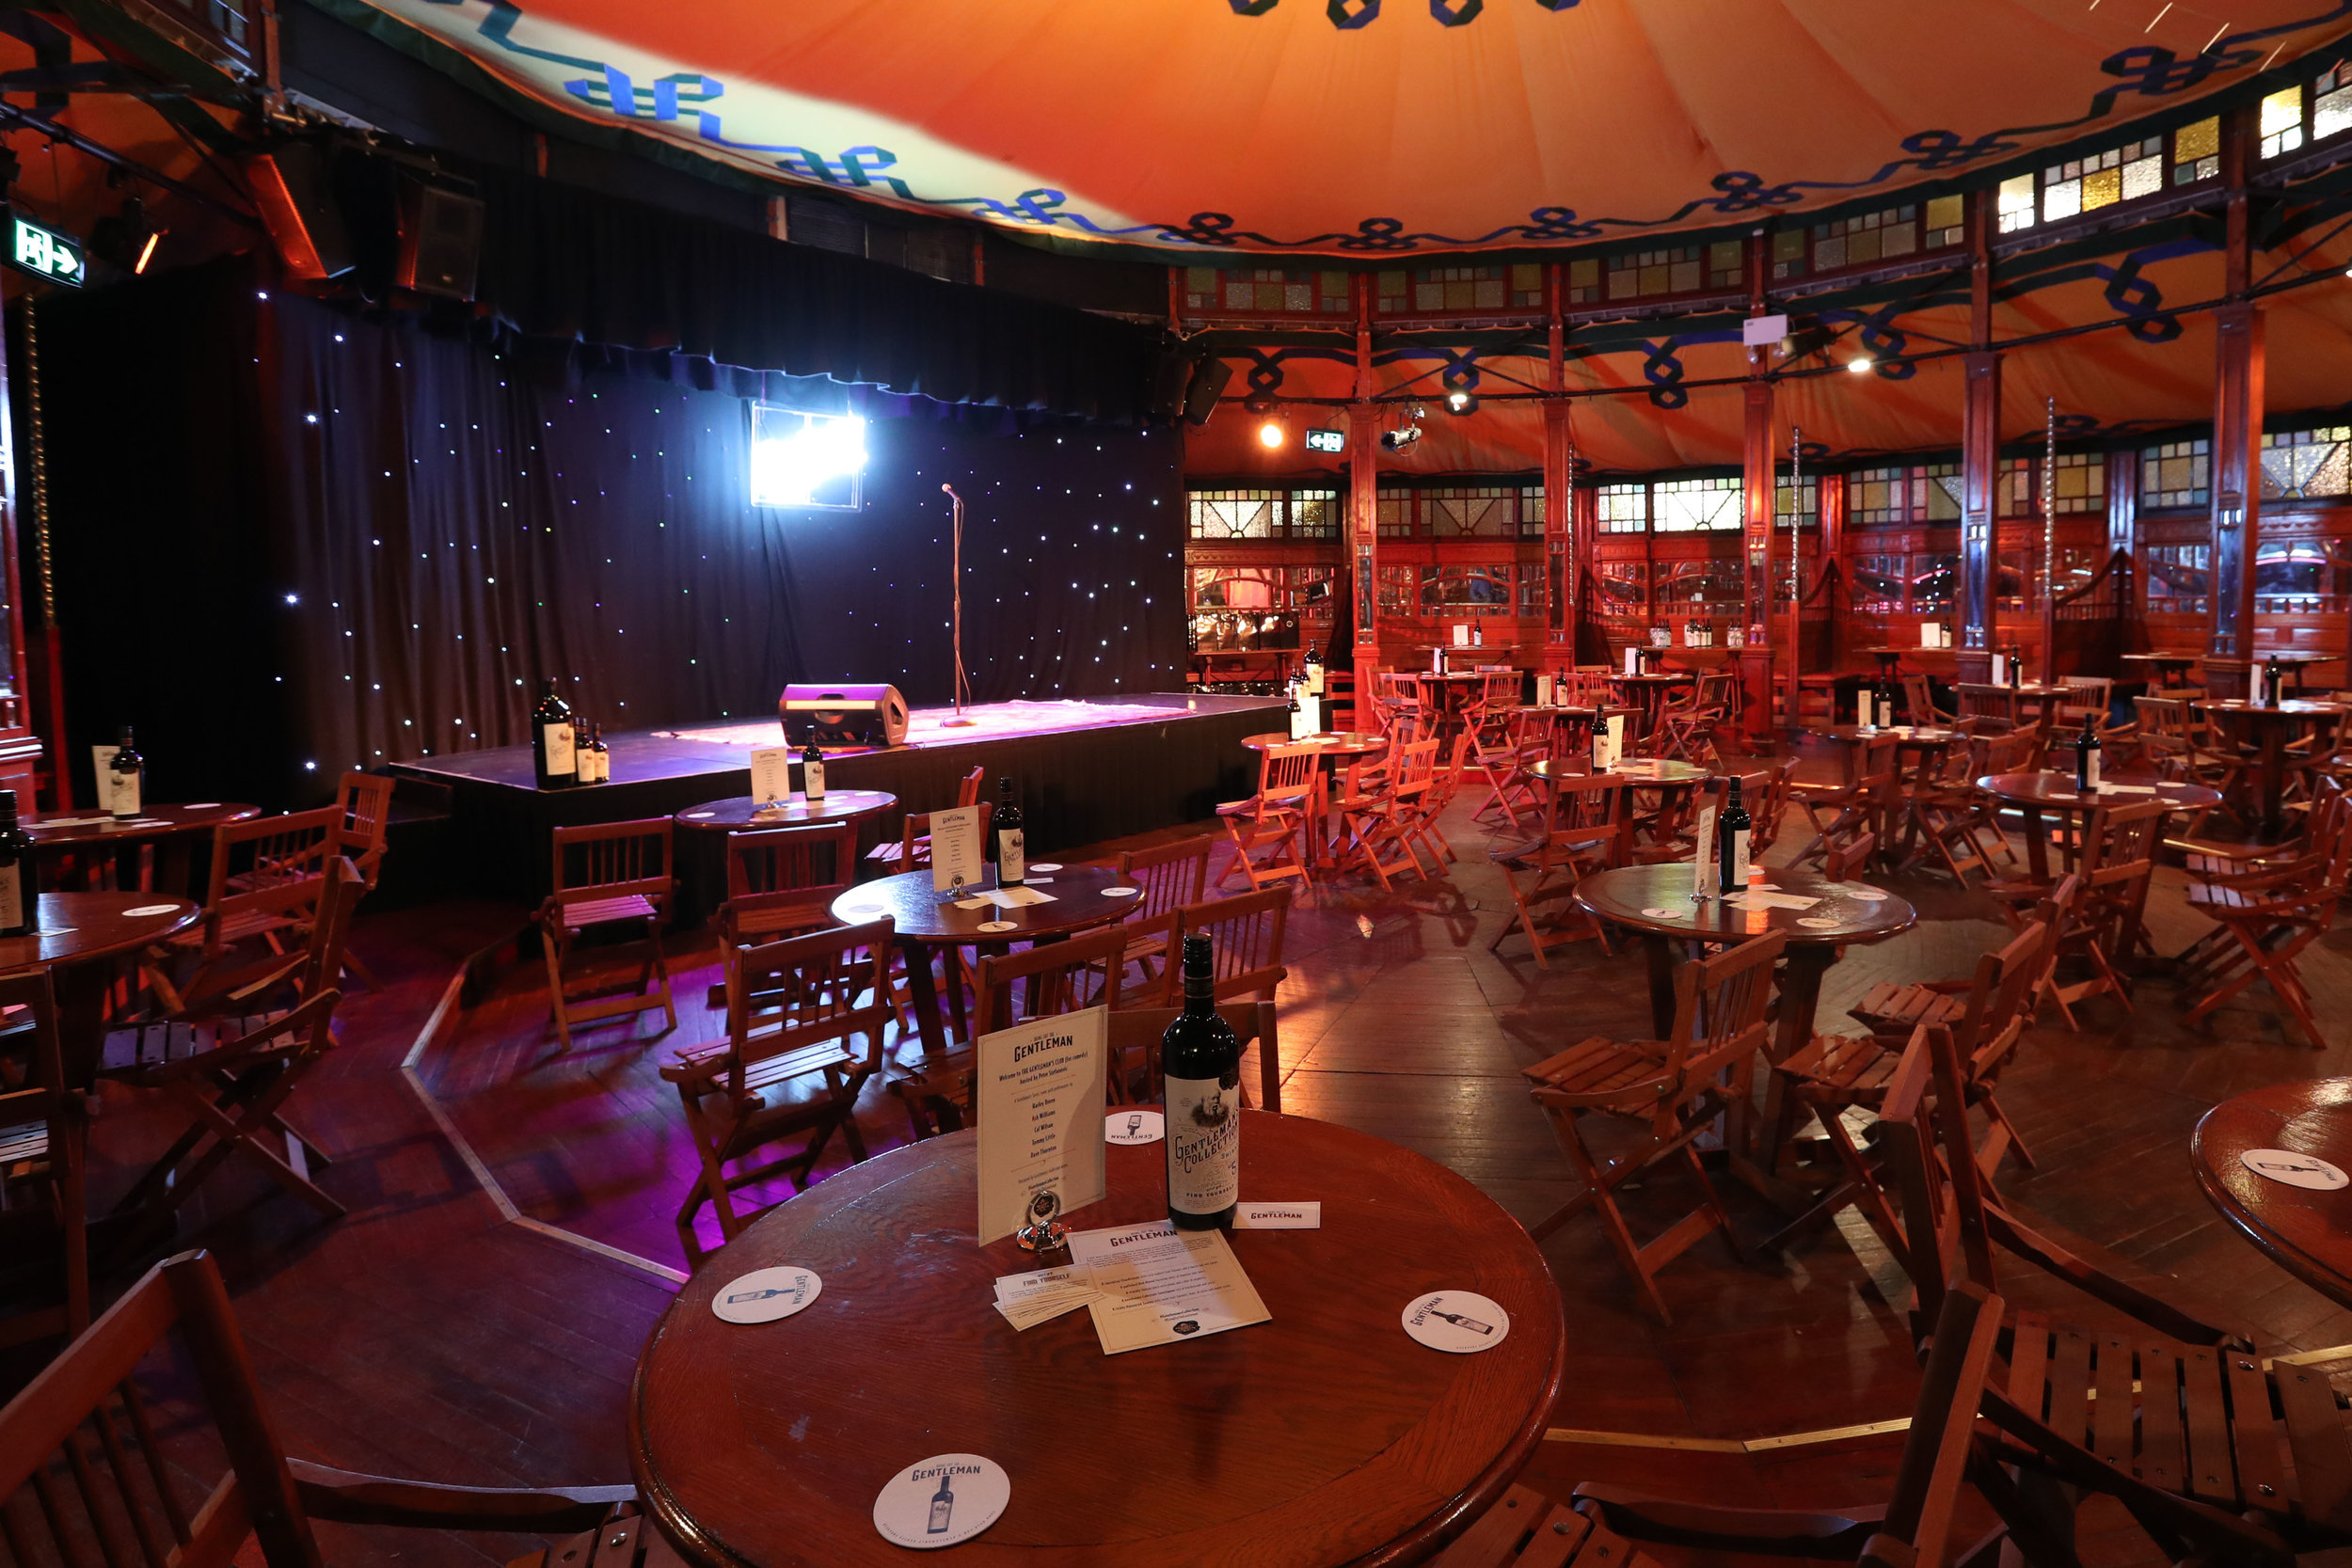 gentlemans-collection-comedy-night-series-4-2017-melba-spiegeltent-4.jpg